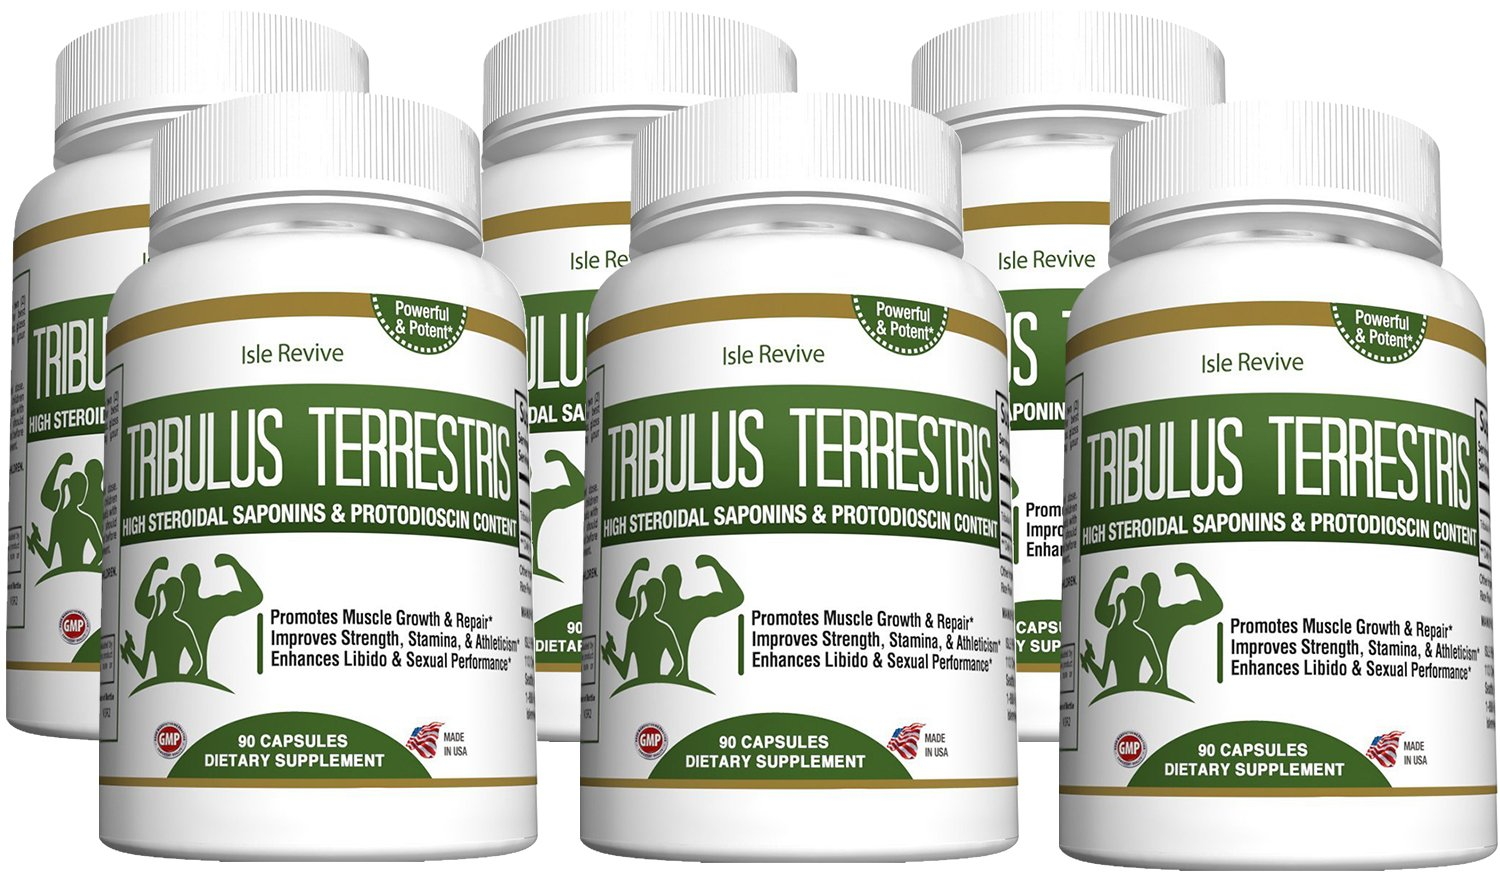 Tribulus Terrestris Testosterone Booster Capsules - Muscle Building Strength Endurance Energy Enhancer for Weight Loss Bodybuilding Performance 6 Bottles 90 Capsules Made in USA